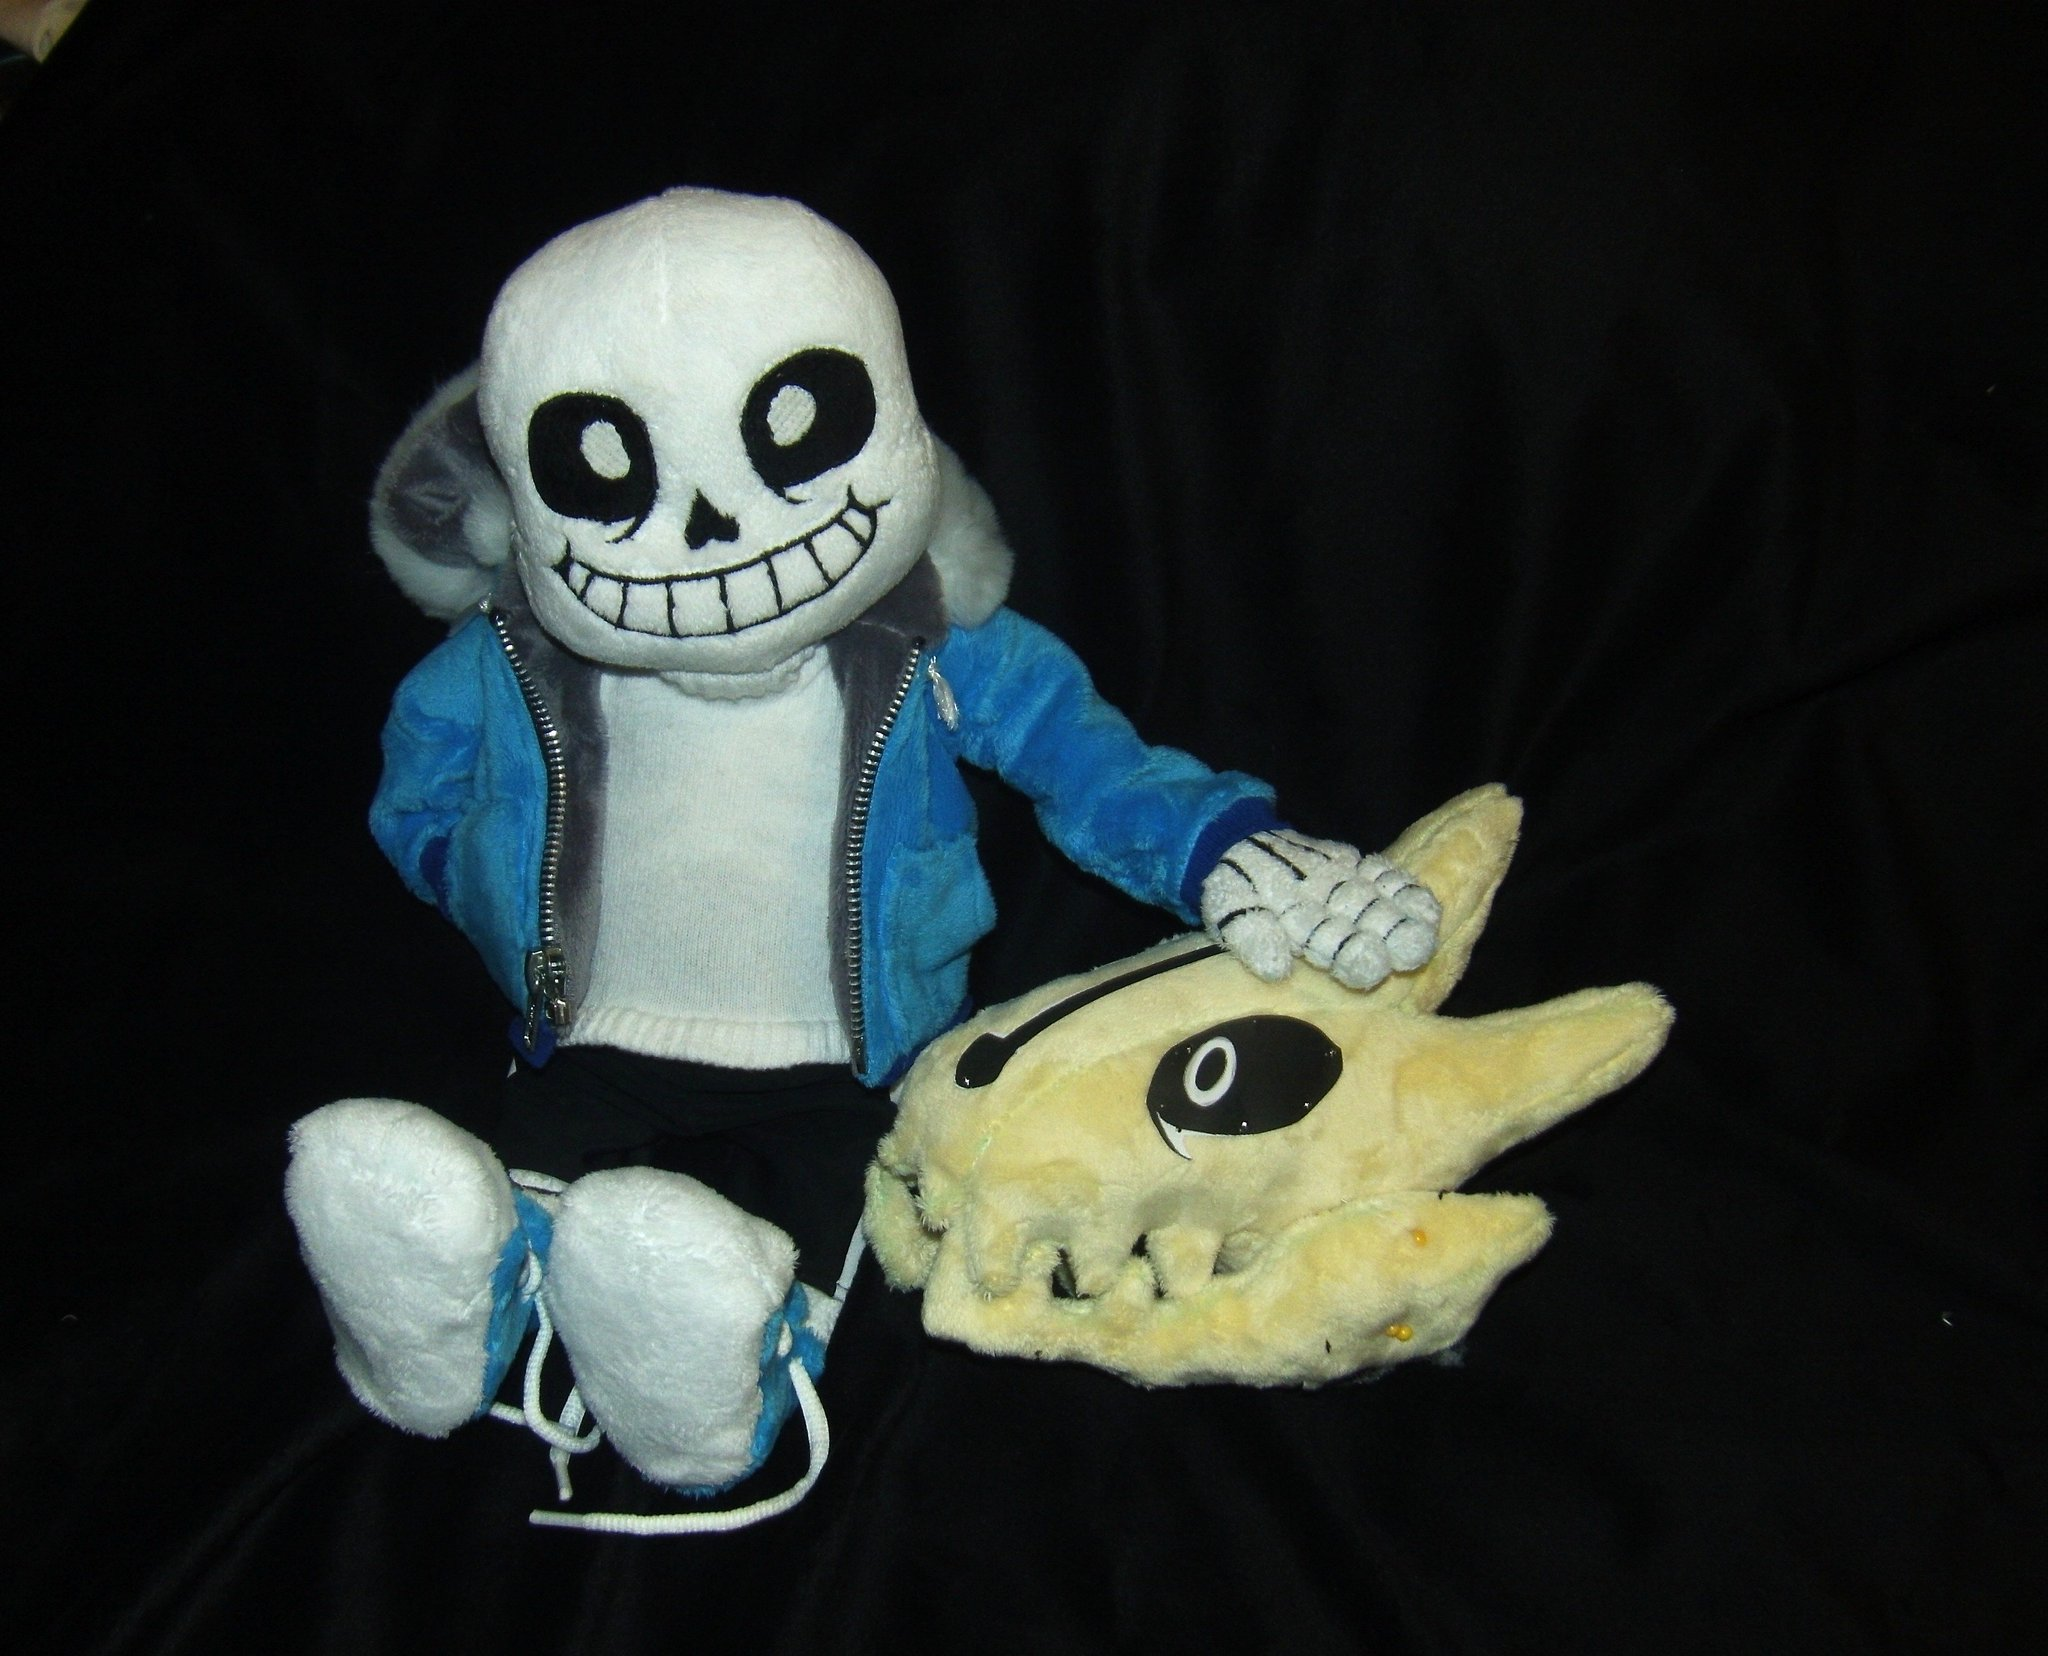 """️Ash ️ on Twitter: """"WIP On my @UnderTale Gaster Blaster ... Invader Zim Characters"""